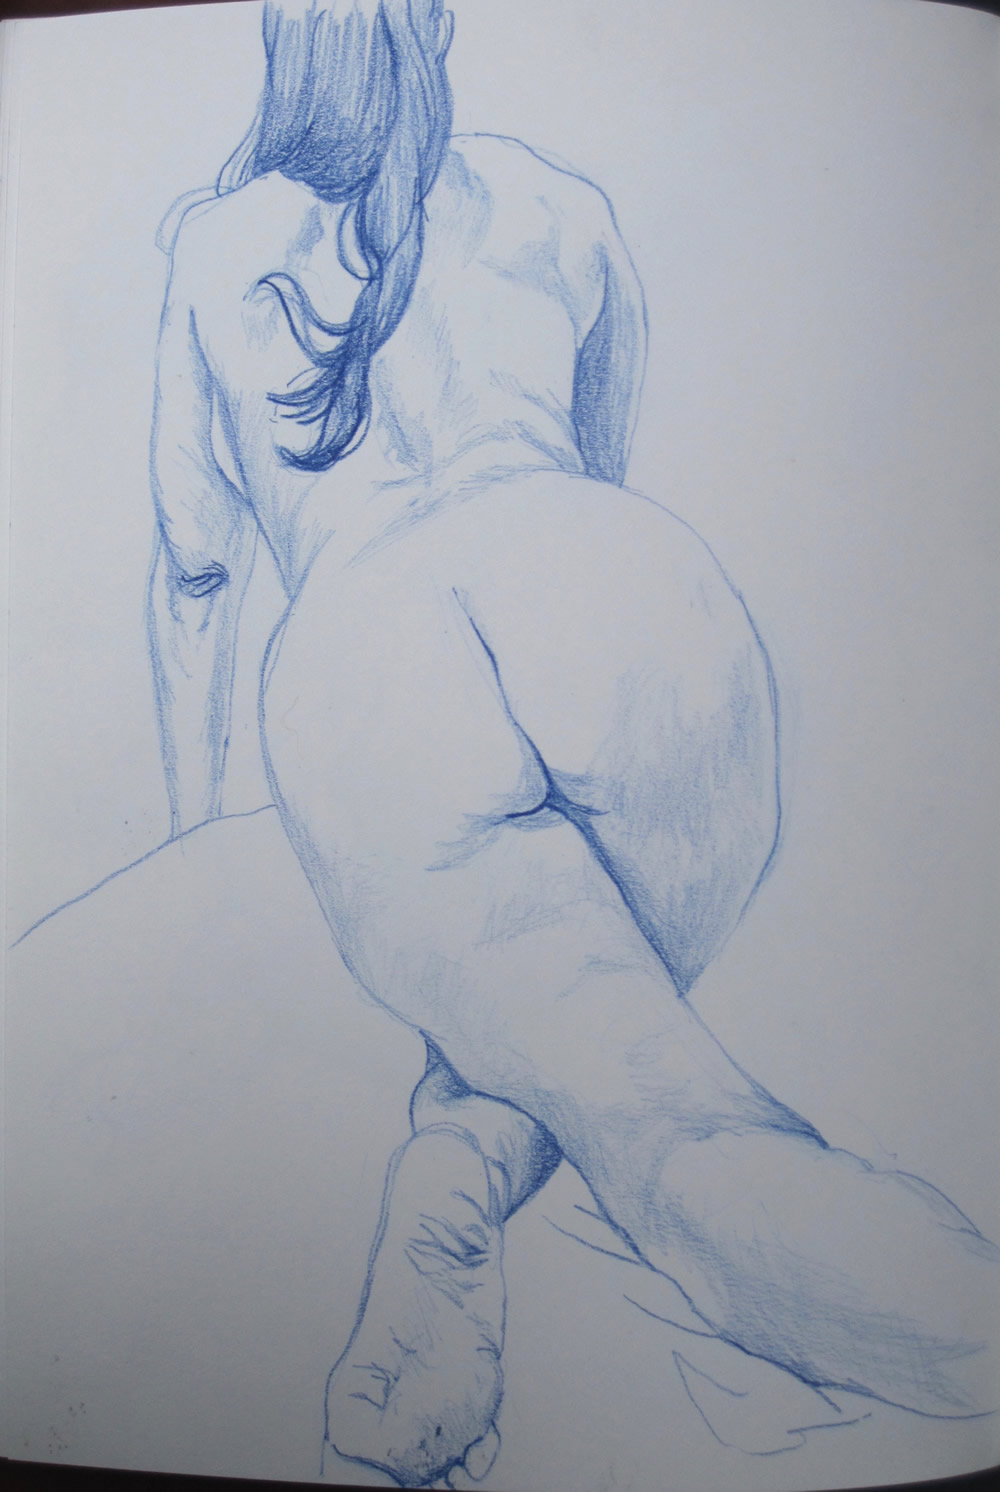 Chrissy Thirlaway, Life 11 series 2, Pencil on paper, 25x32cm